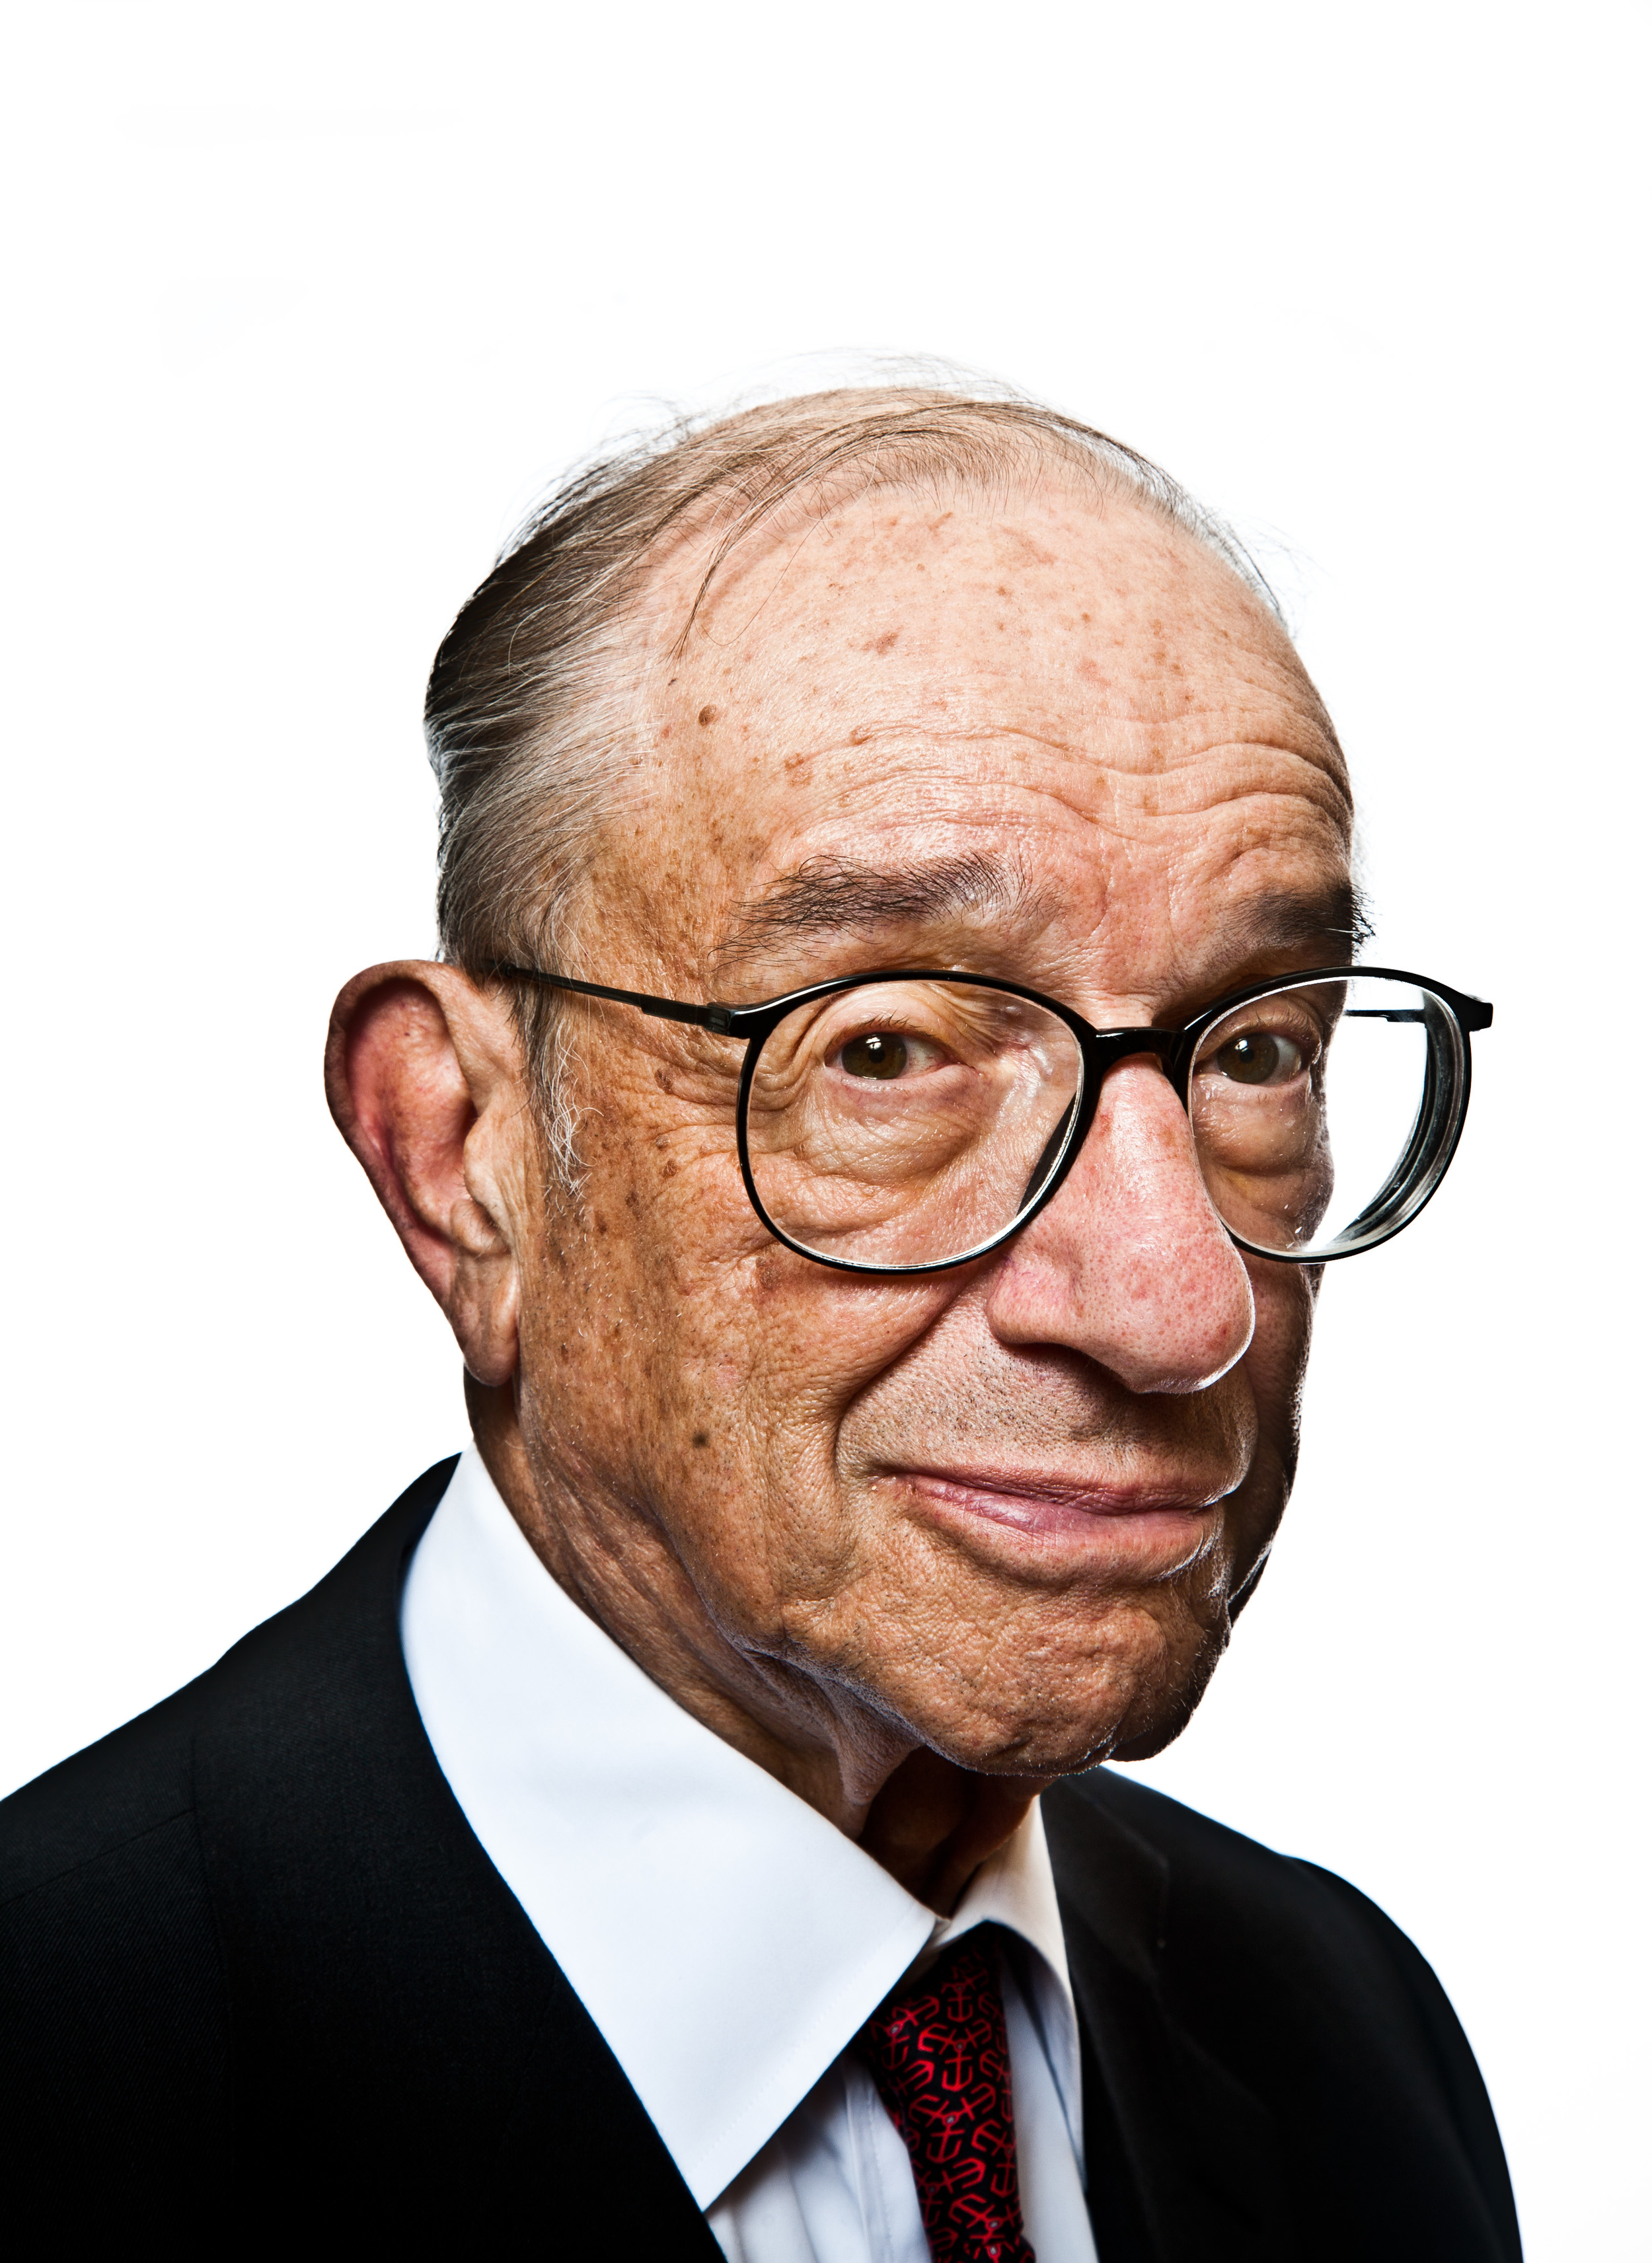 Former Chairman of the Federal Reserve Alan Greenspan